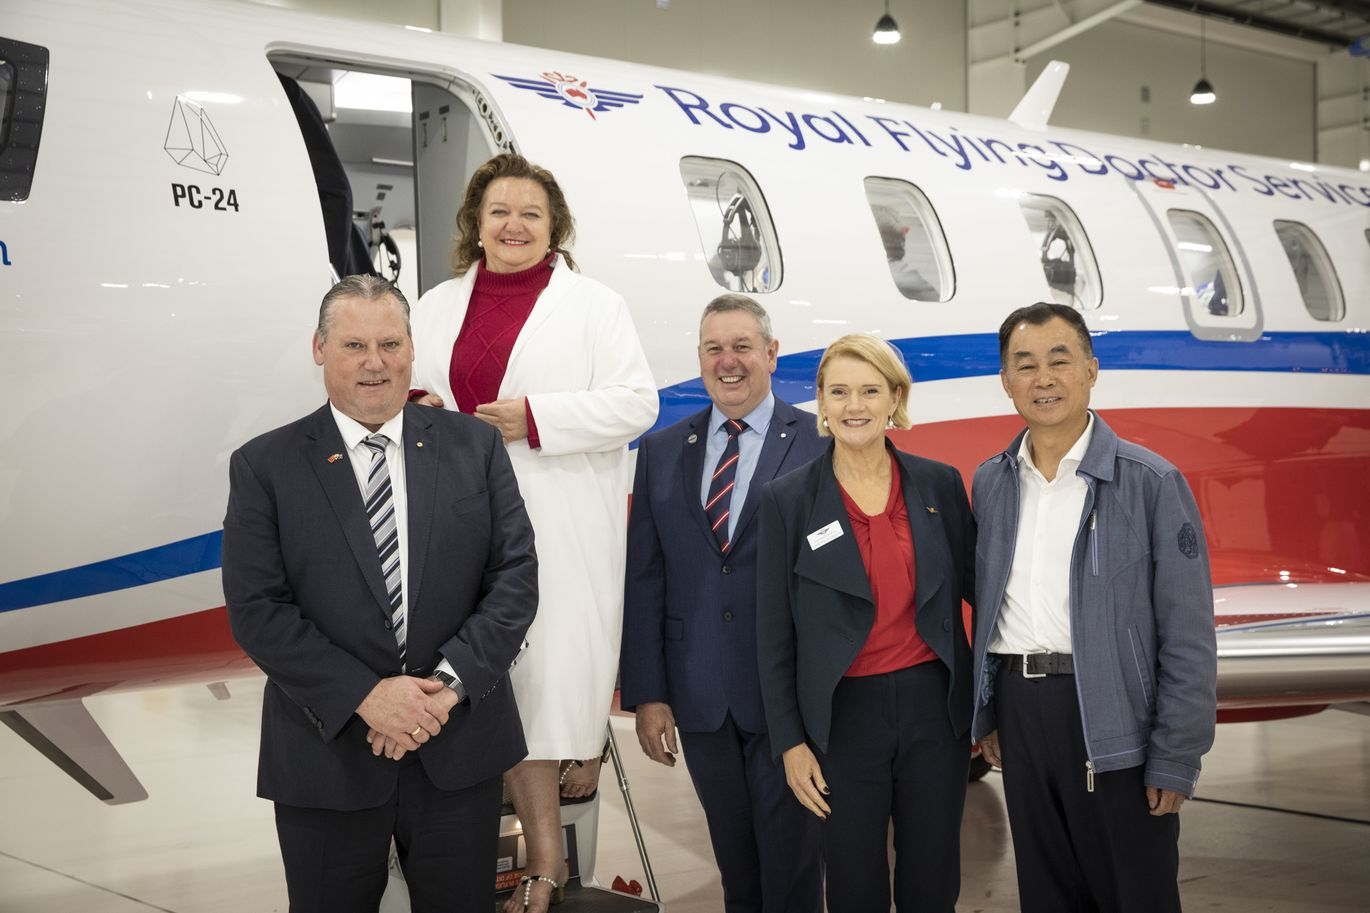 5 adults smile at the camera. They are all wearing corporate attires. An aircraft with RFDS logo and S Kidman and Co logo is behind them.